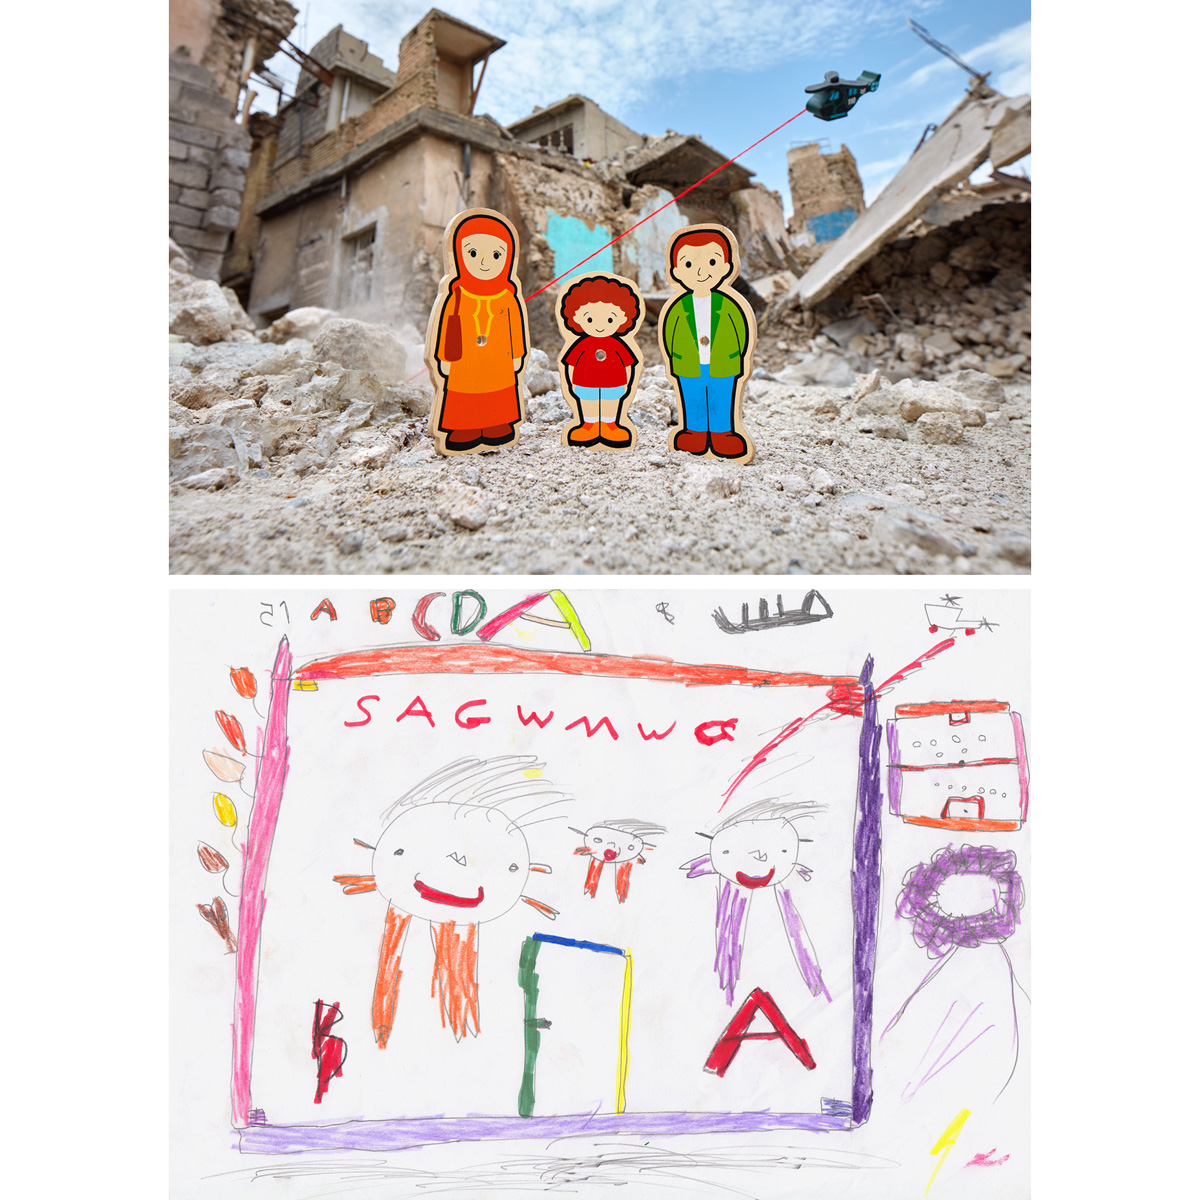 Homecoming - Old City of Mosul, Iraq2018At a child friendly space in the Debaga IDP Camp in Iraq, Hussein made a drawing showing he and his parents returning home, yet even at this hopeful event, a helicopter can be seen shooting at them from above. As he waited to show the art therapist his drawing, Hussein filled the blank spaces on his page by practicing the English letters he had been learning. A set of secondhand wooden toys were found in a bin at the Langa Bazaar in Erbil. The figures looked like they once belonged to a puzzle for a young child, one where each family member had a place where they fit, perhaps within a house. They were taken to the remains of the Old City in West Mosul, and Hussein's imagined homecoming was photographed within the current reality, still littered with corpses and explosive hazards.